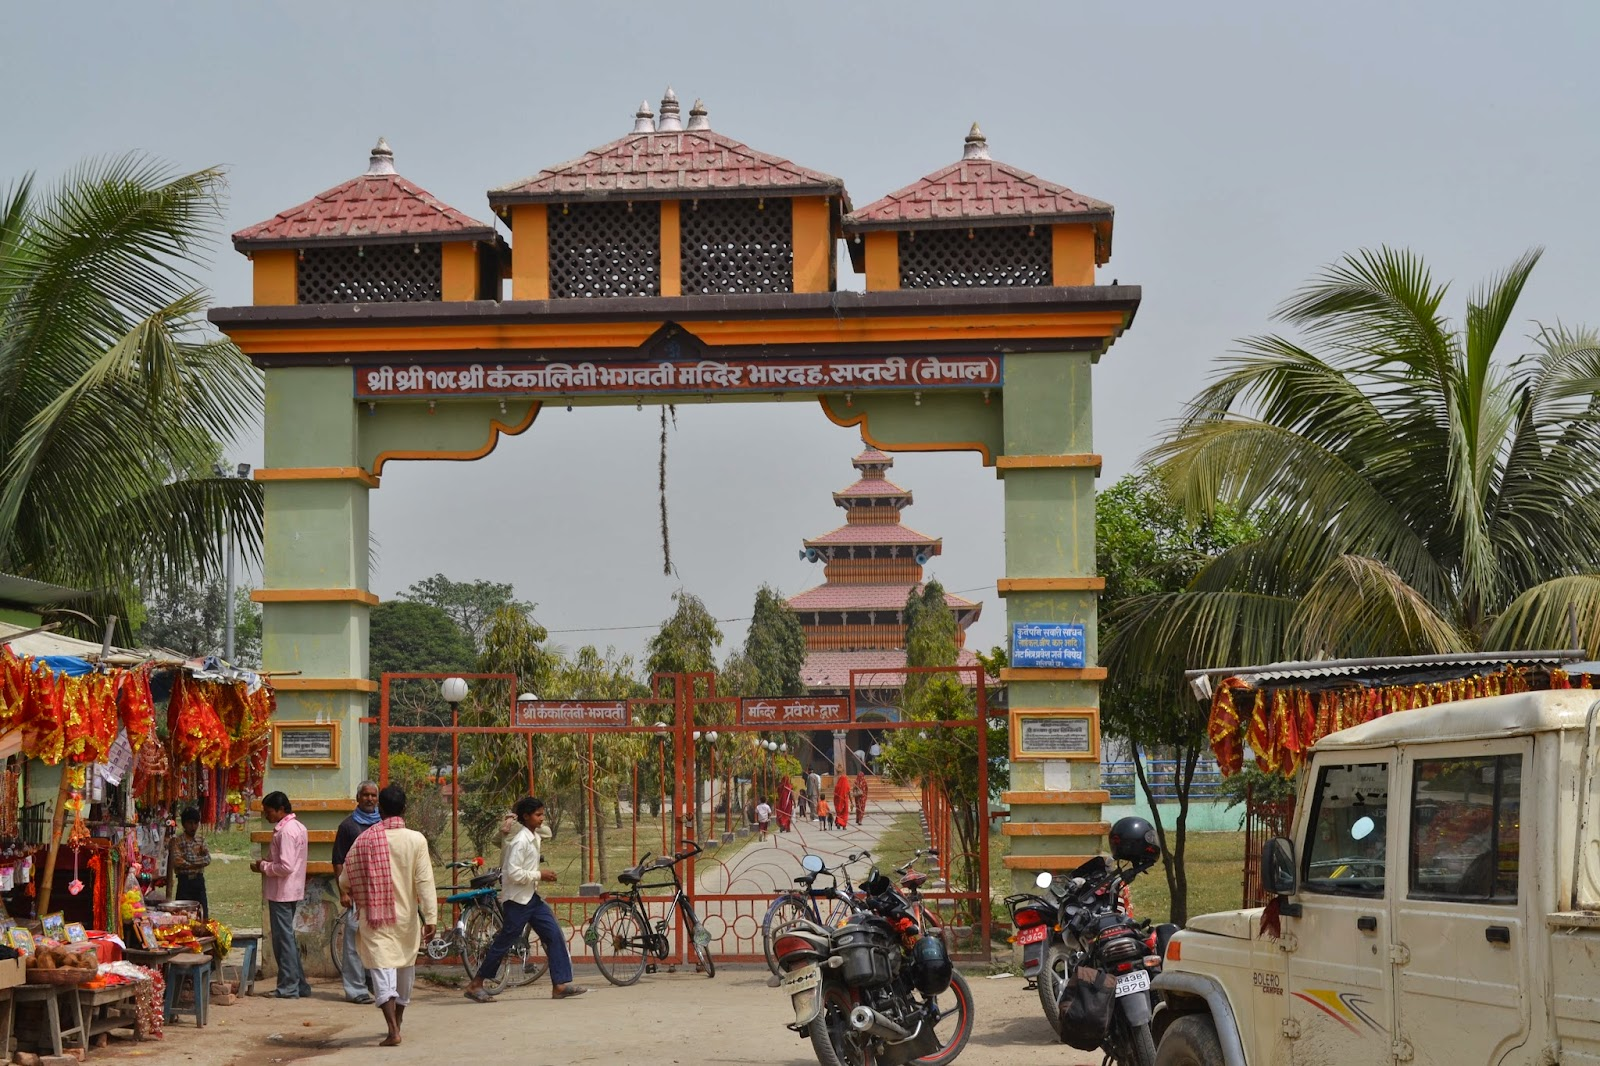 Entrance gate of Kankali tempe , Bharda, Nepal